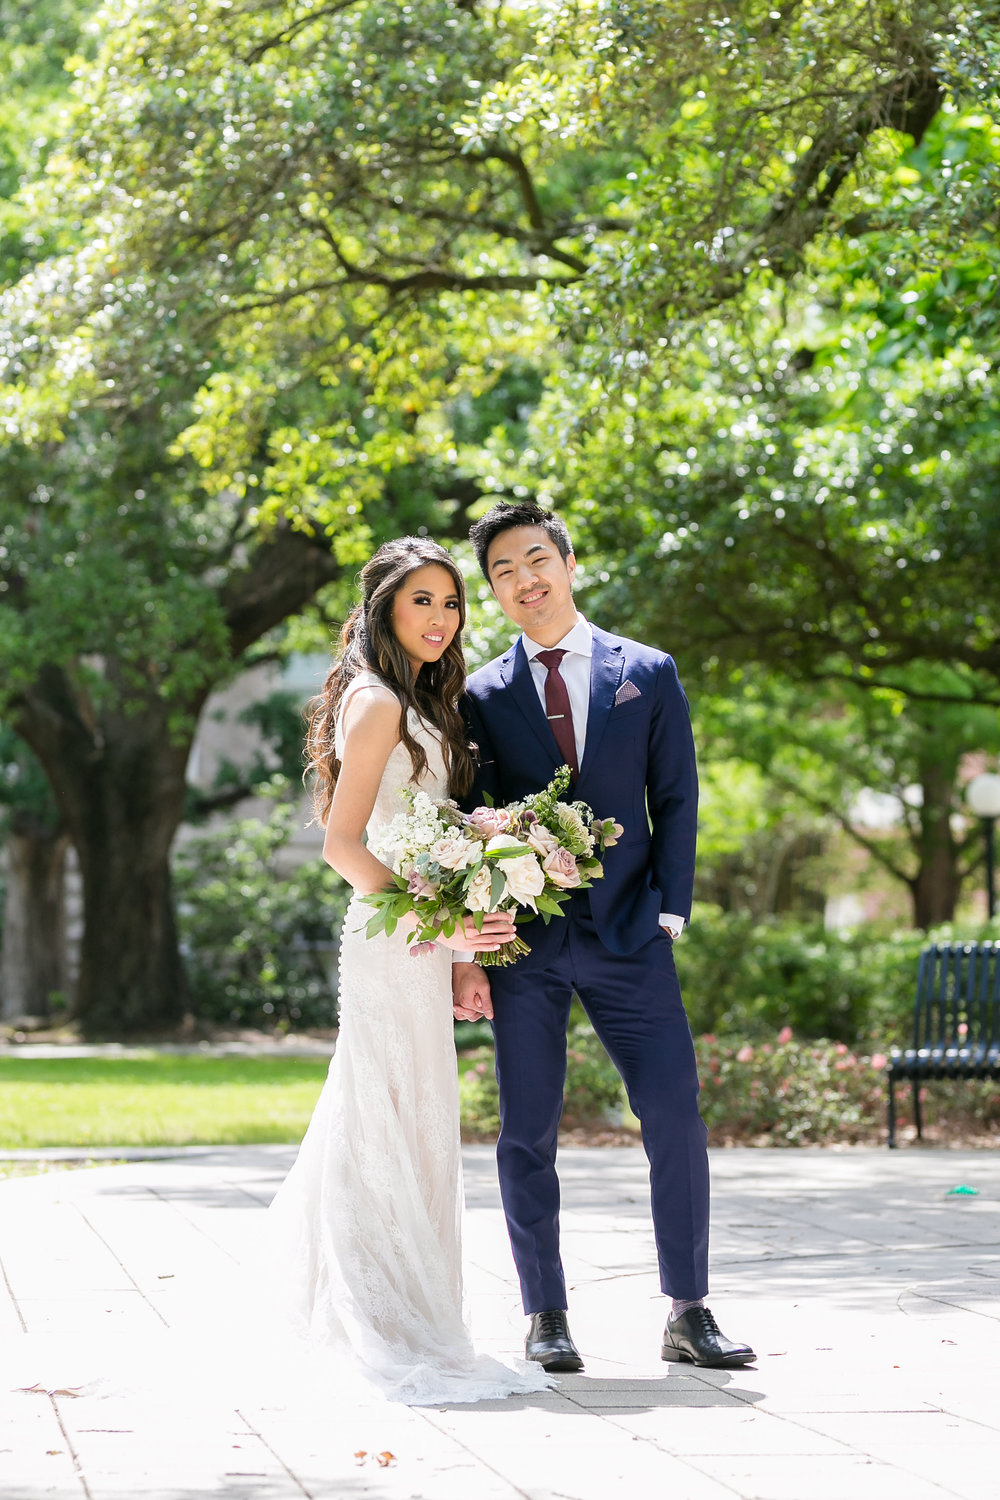 New Orleans Wedding Photography Destination David Kim-8.jpg